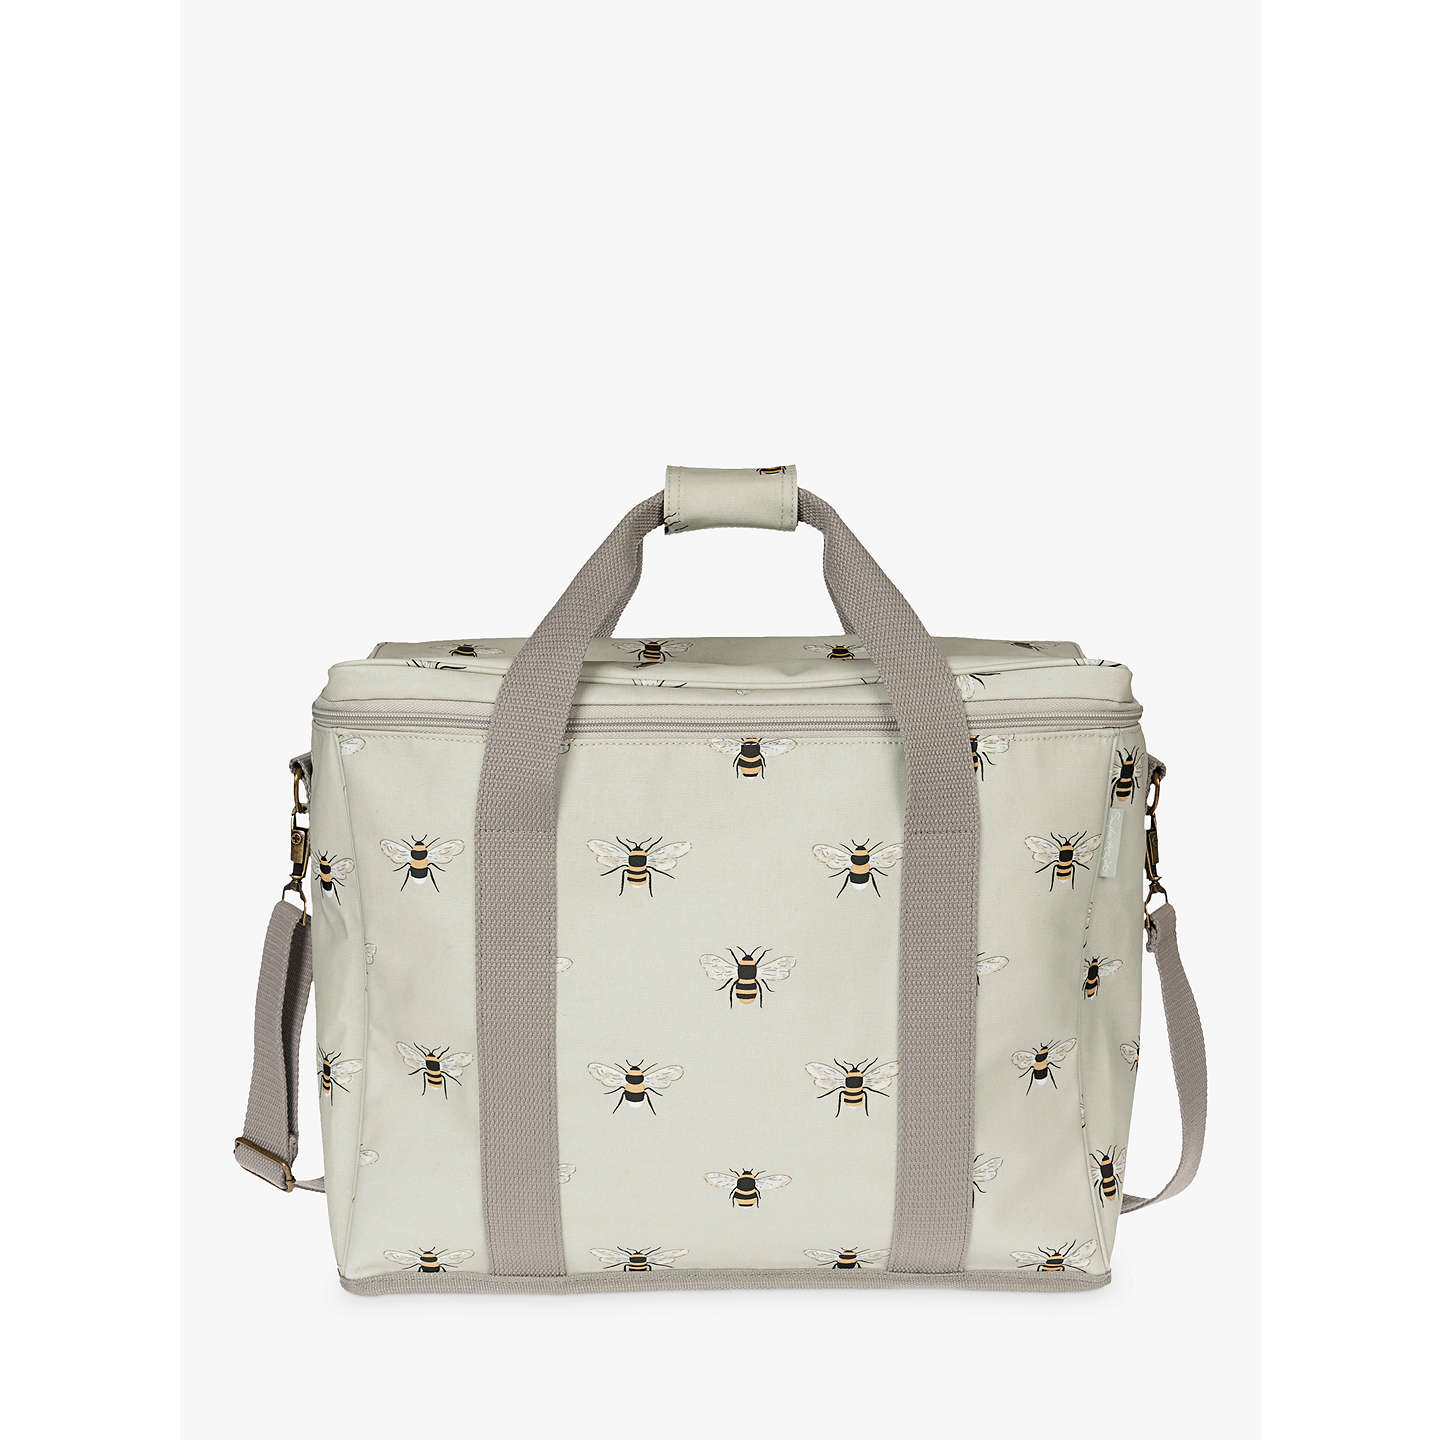 BuySophie Allport Bees Large Picnic Cooler Bag, Pale Green/Multi, 25L Online at johnlewis.com